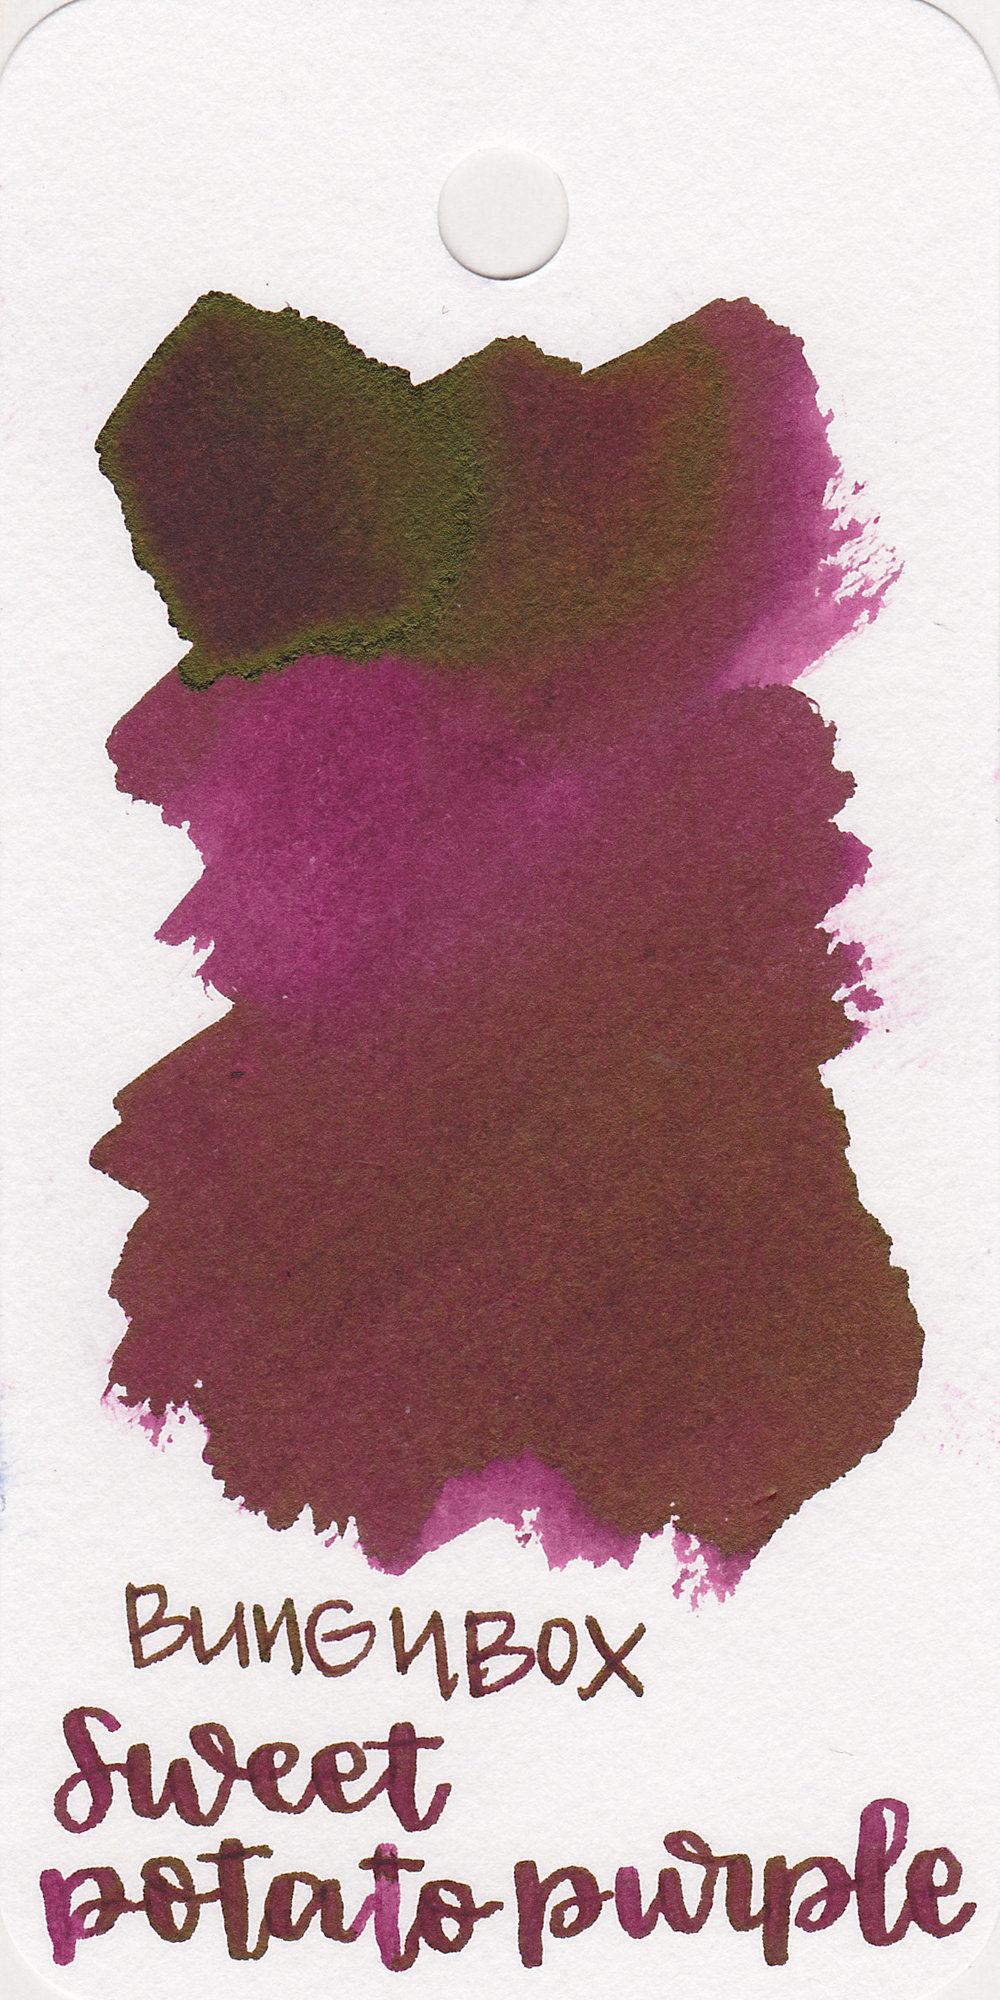 The color: - Sweet Potato Purple is a dark fuchsia purple.